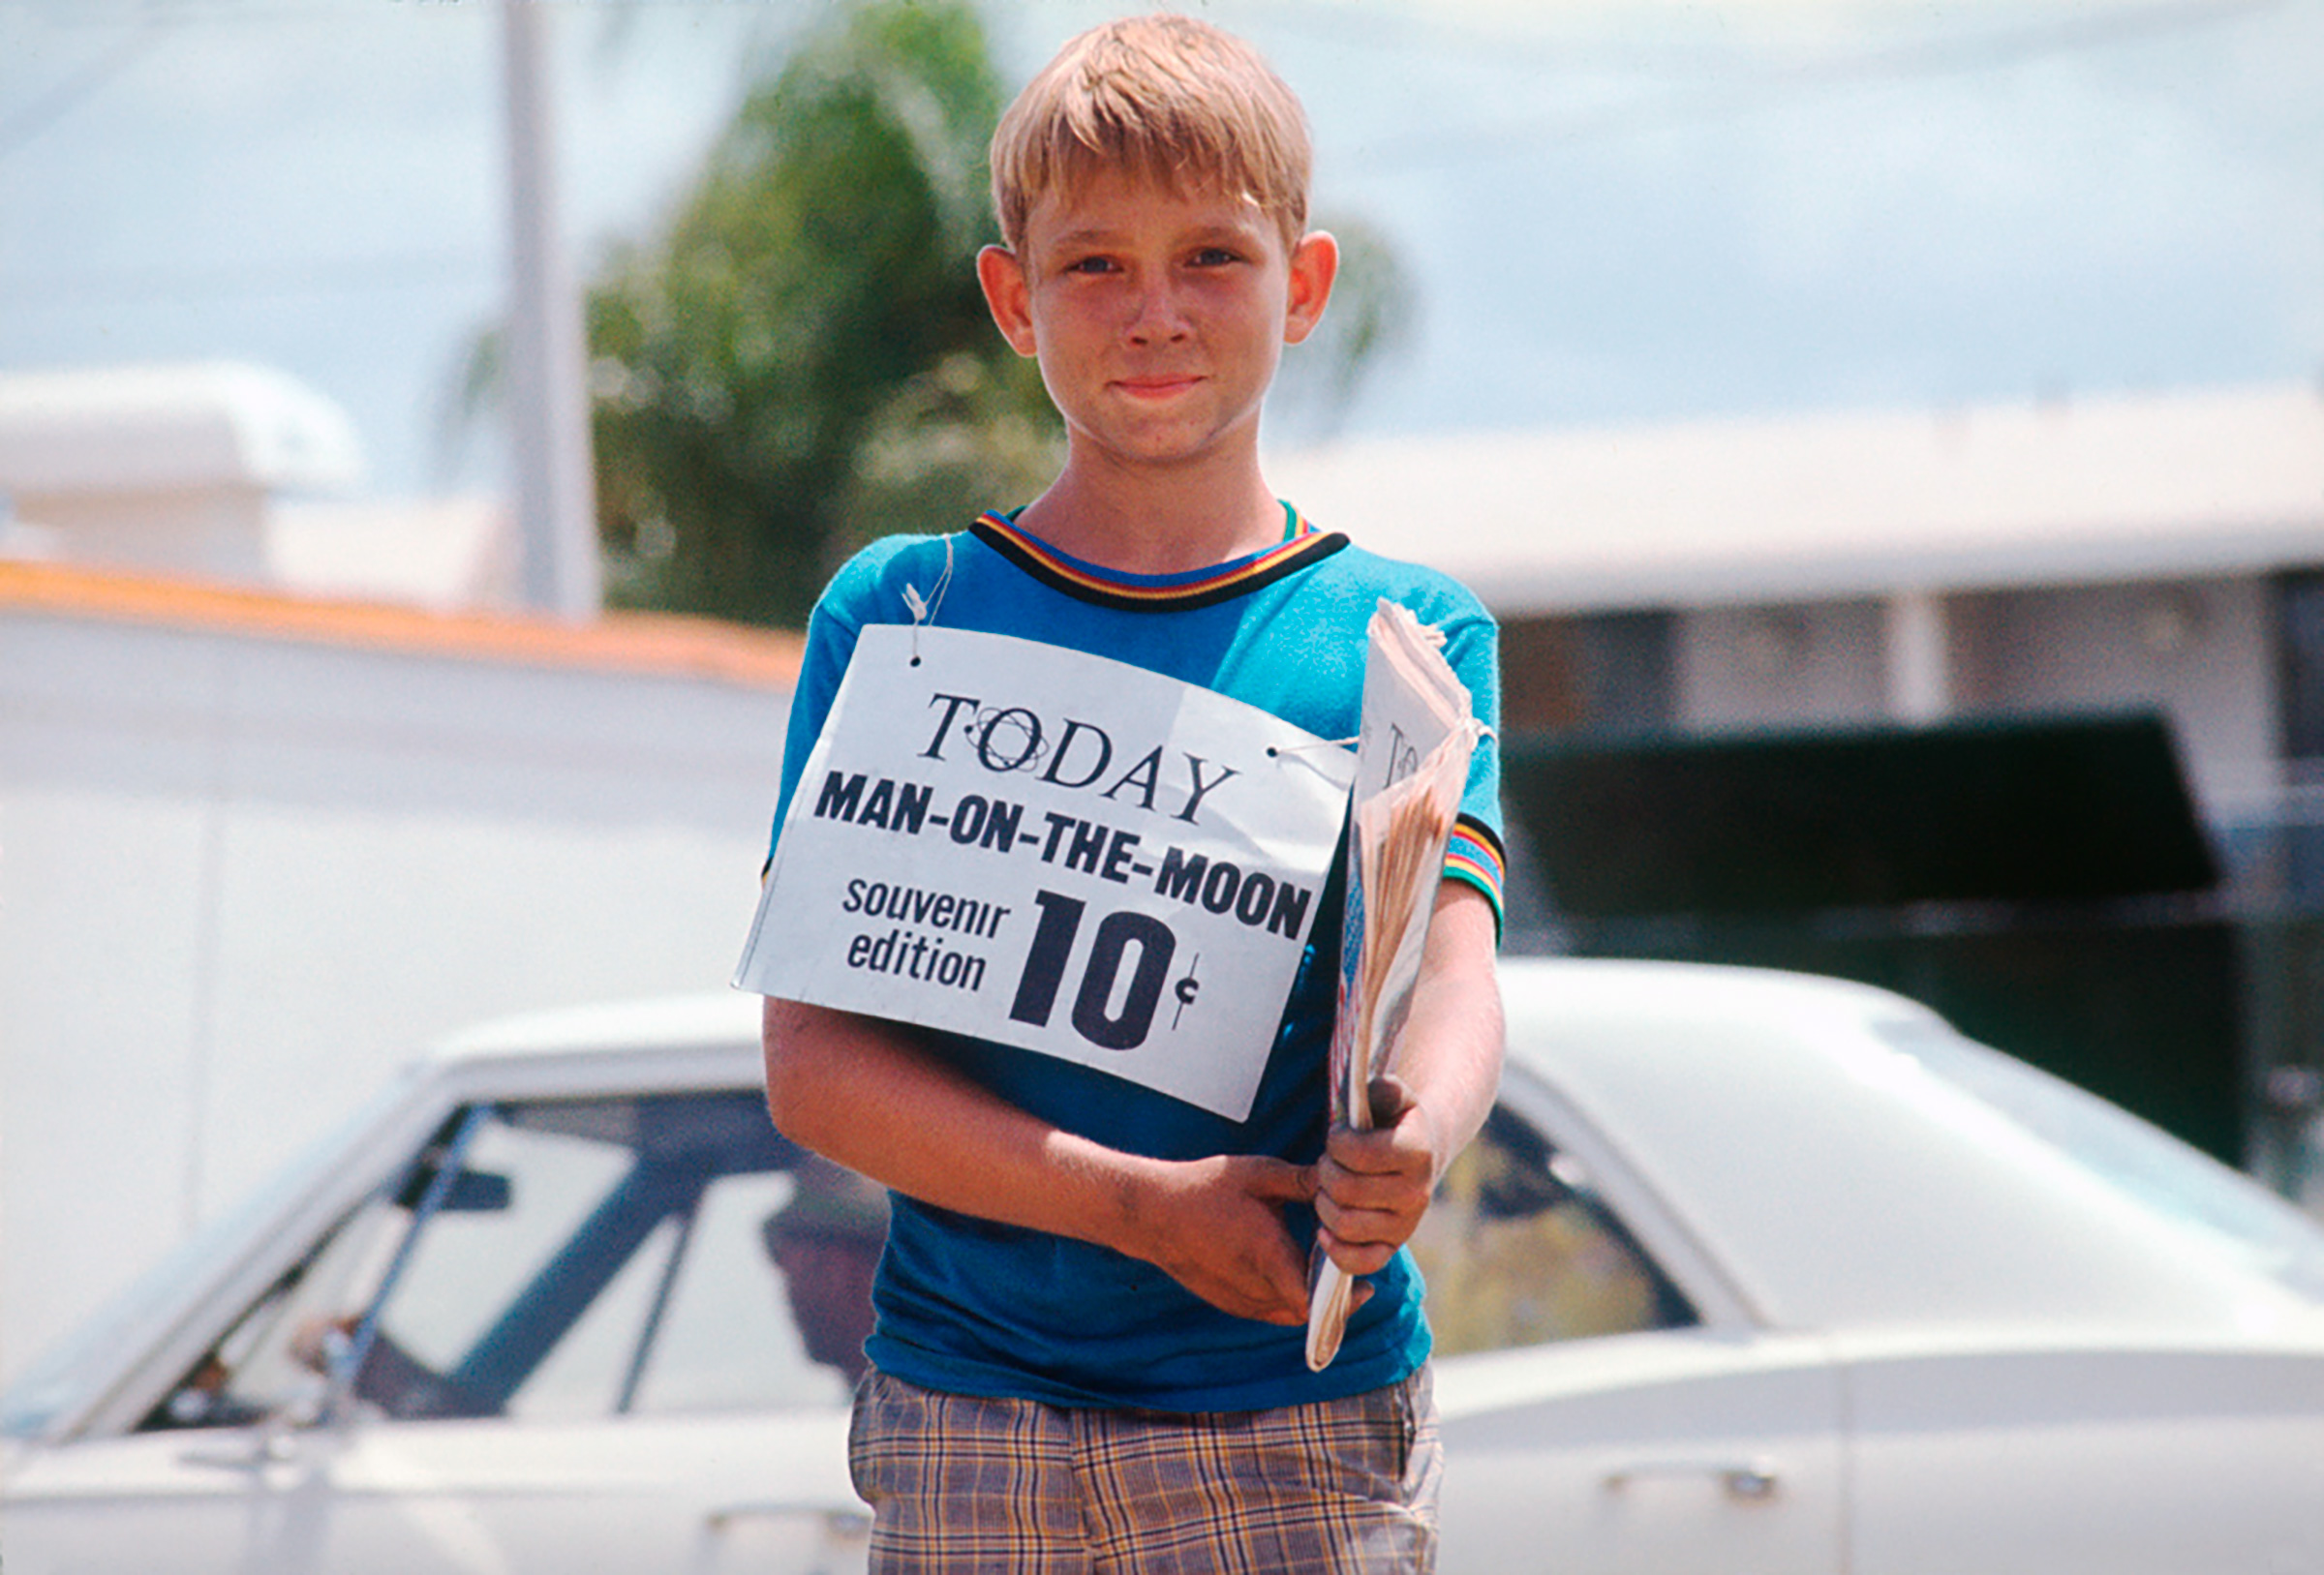 A young boy sells souvenirs in Titusville, Florida.